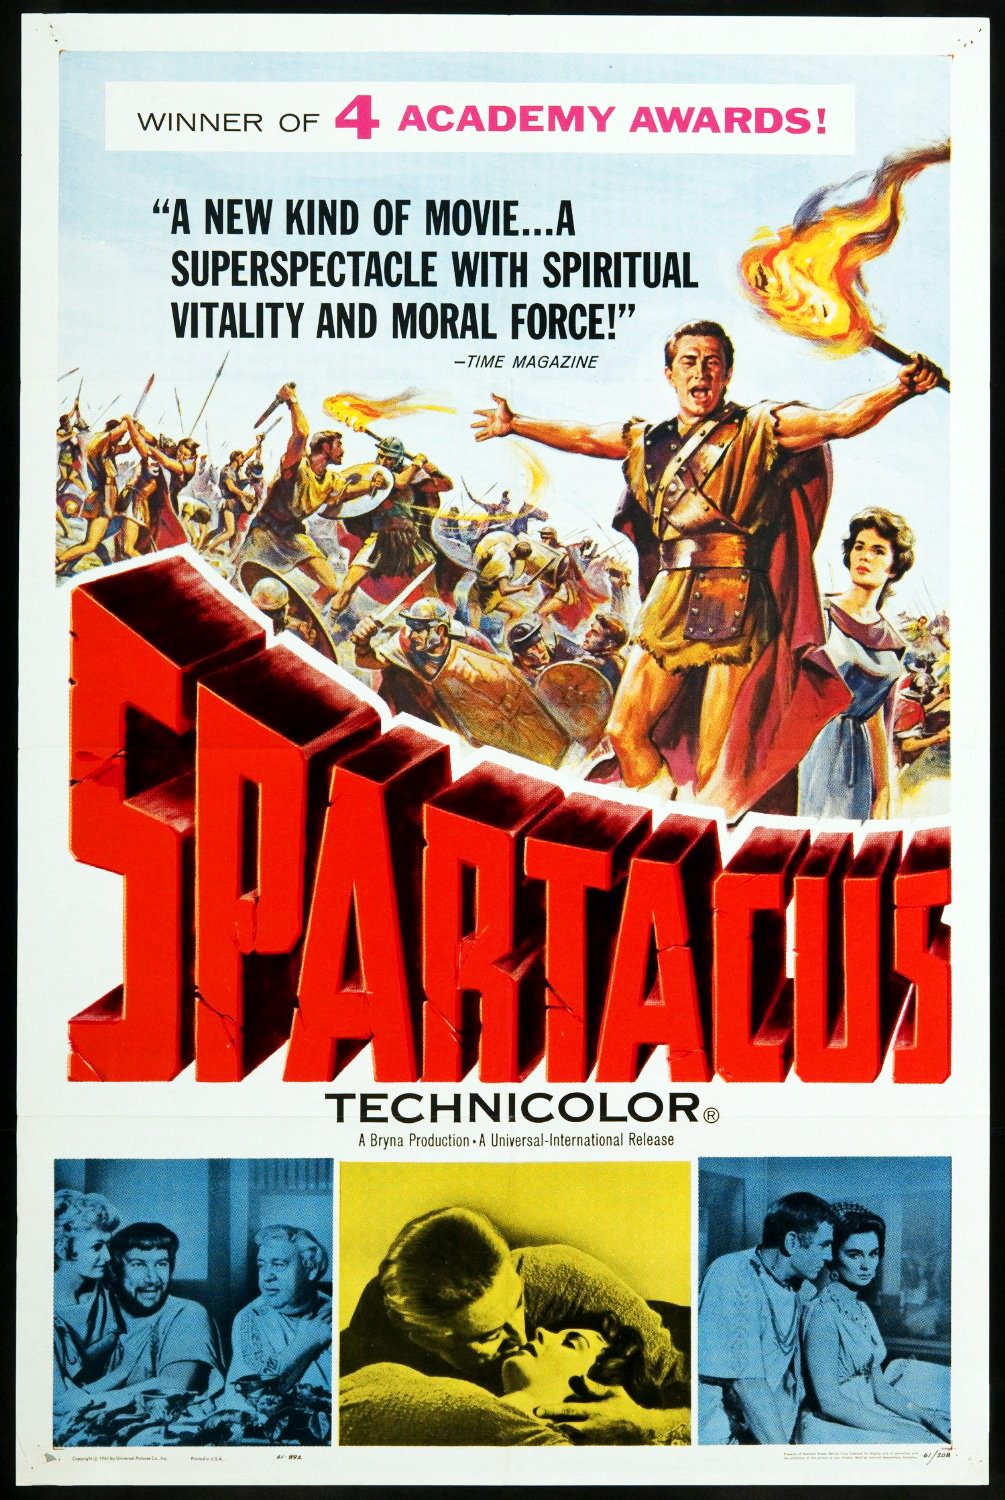 The original Spartacus movie poster